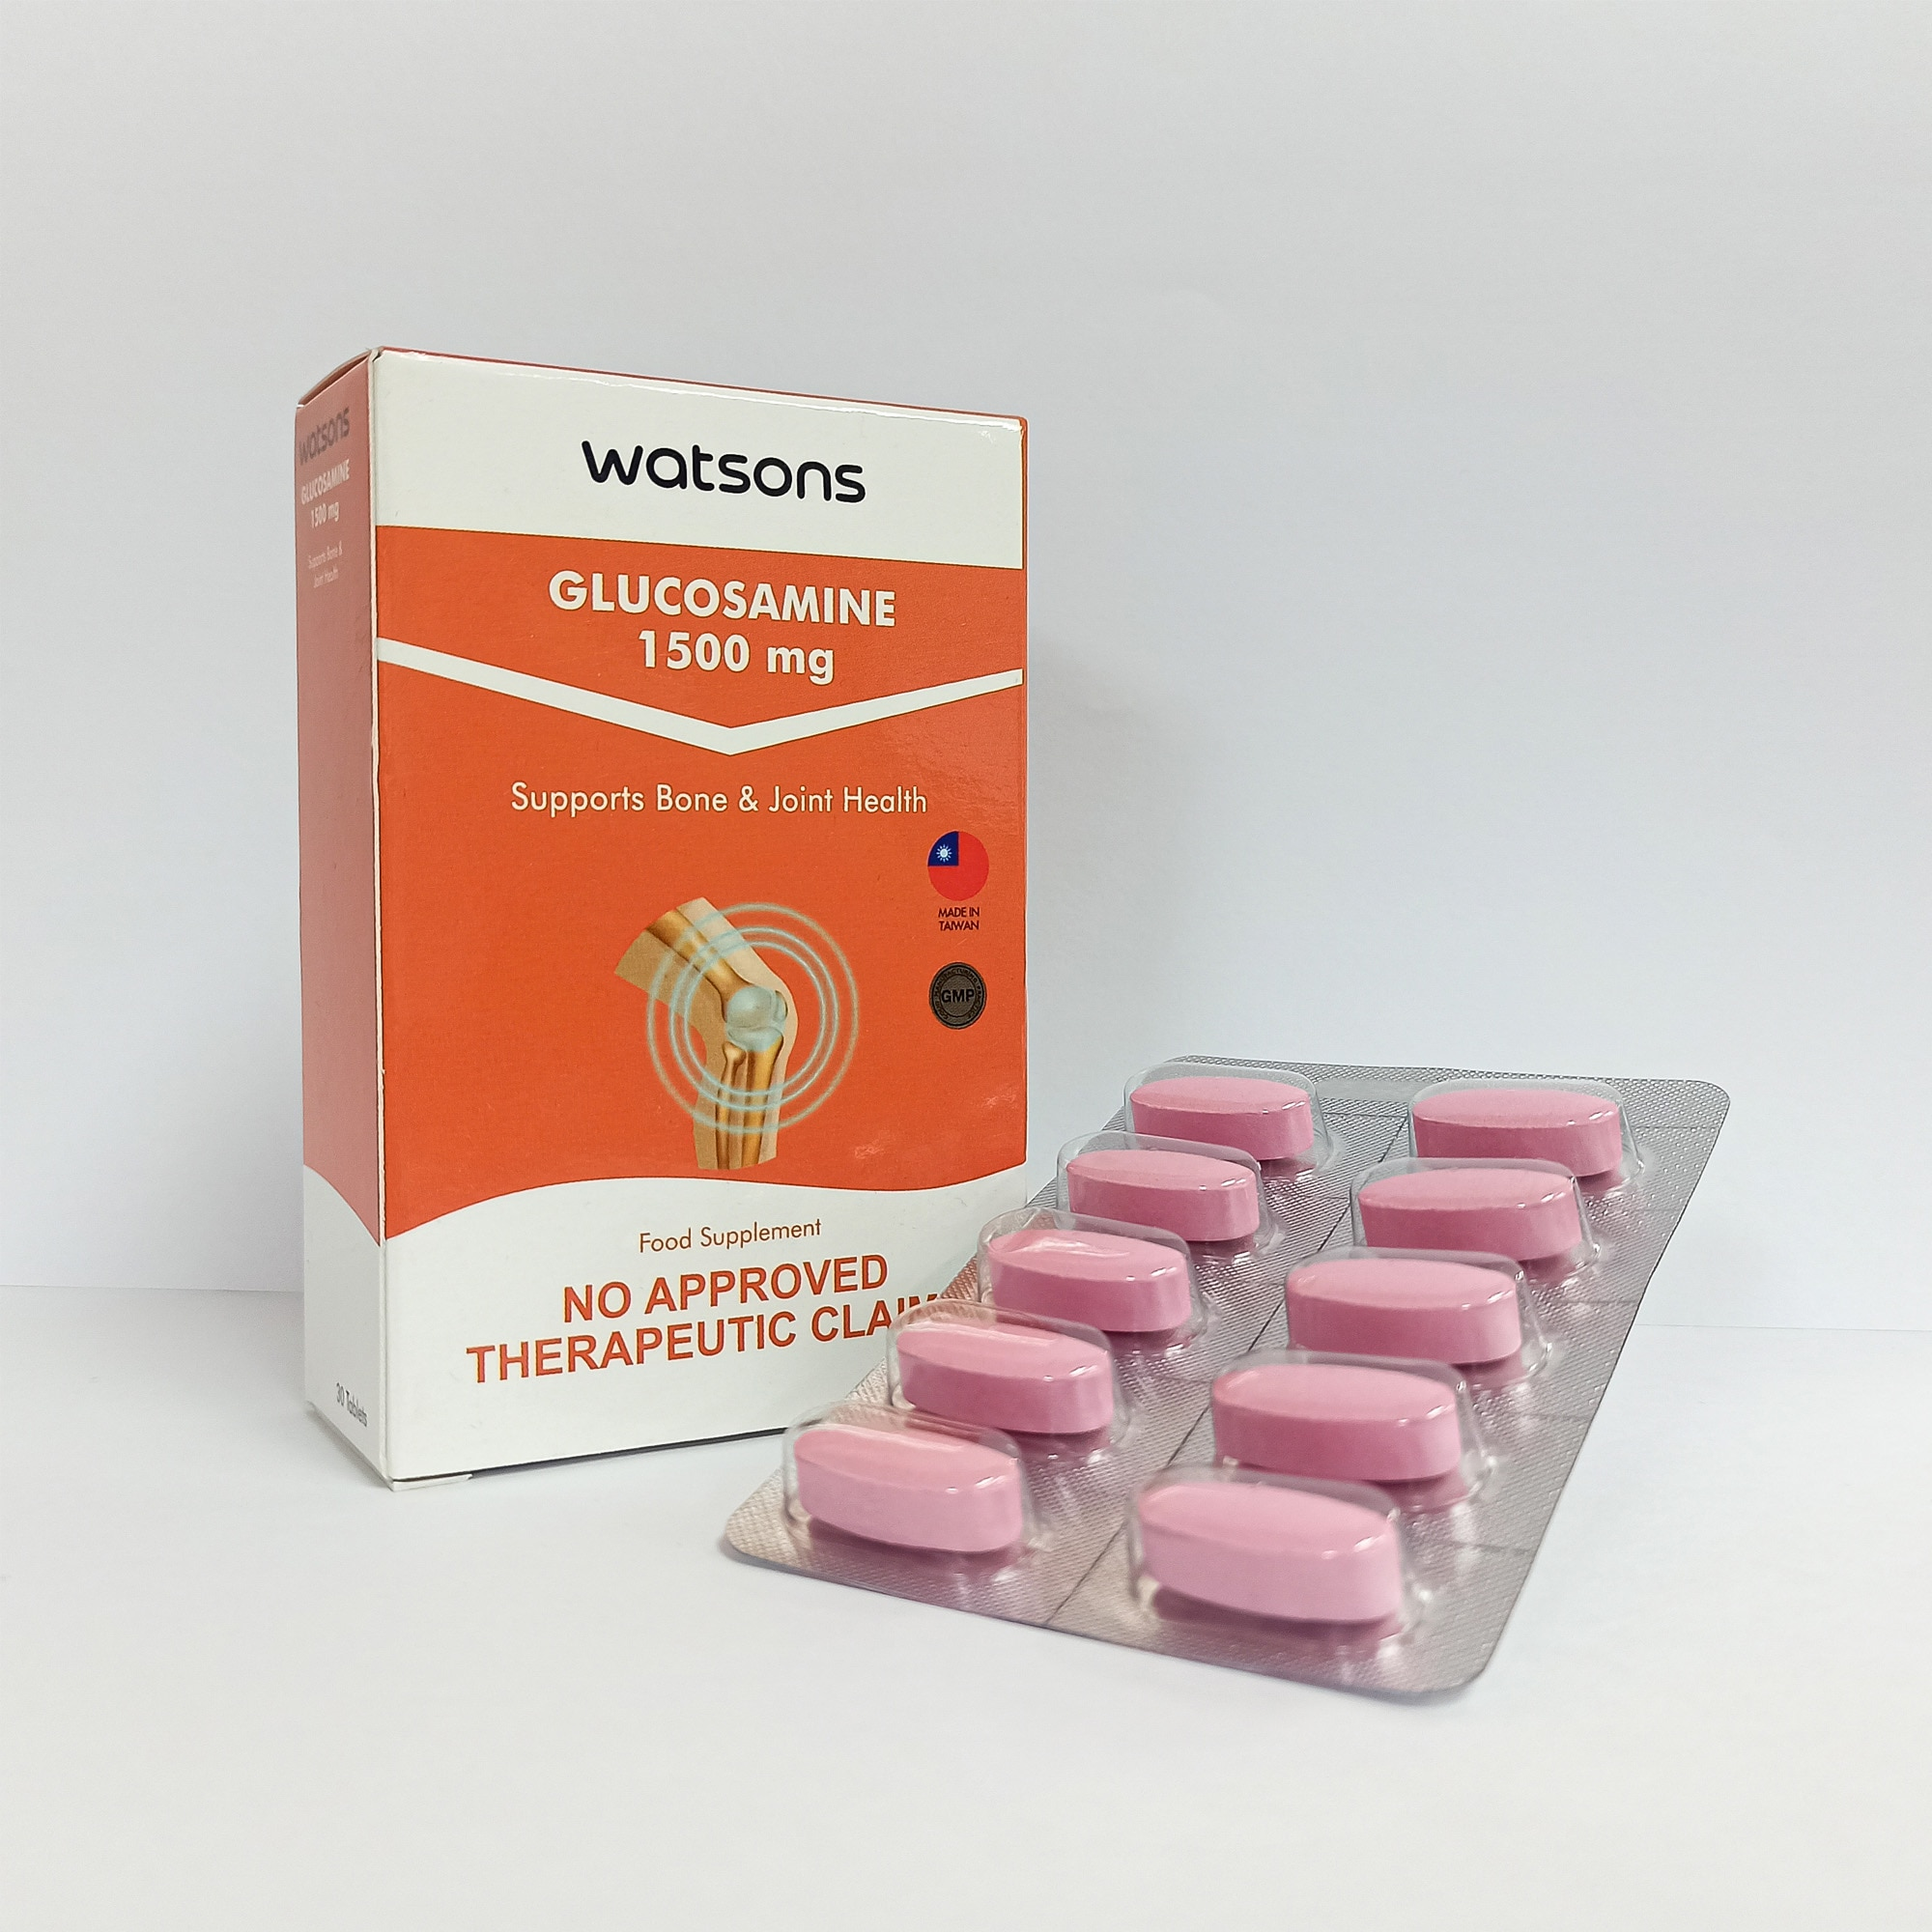 WATSONSGlucosamine Tablet 1500mg x 30 Tablets,Joint Care-